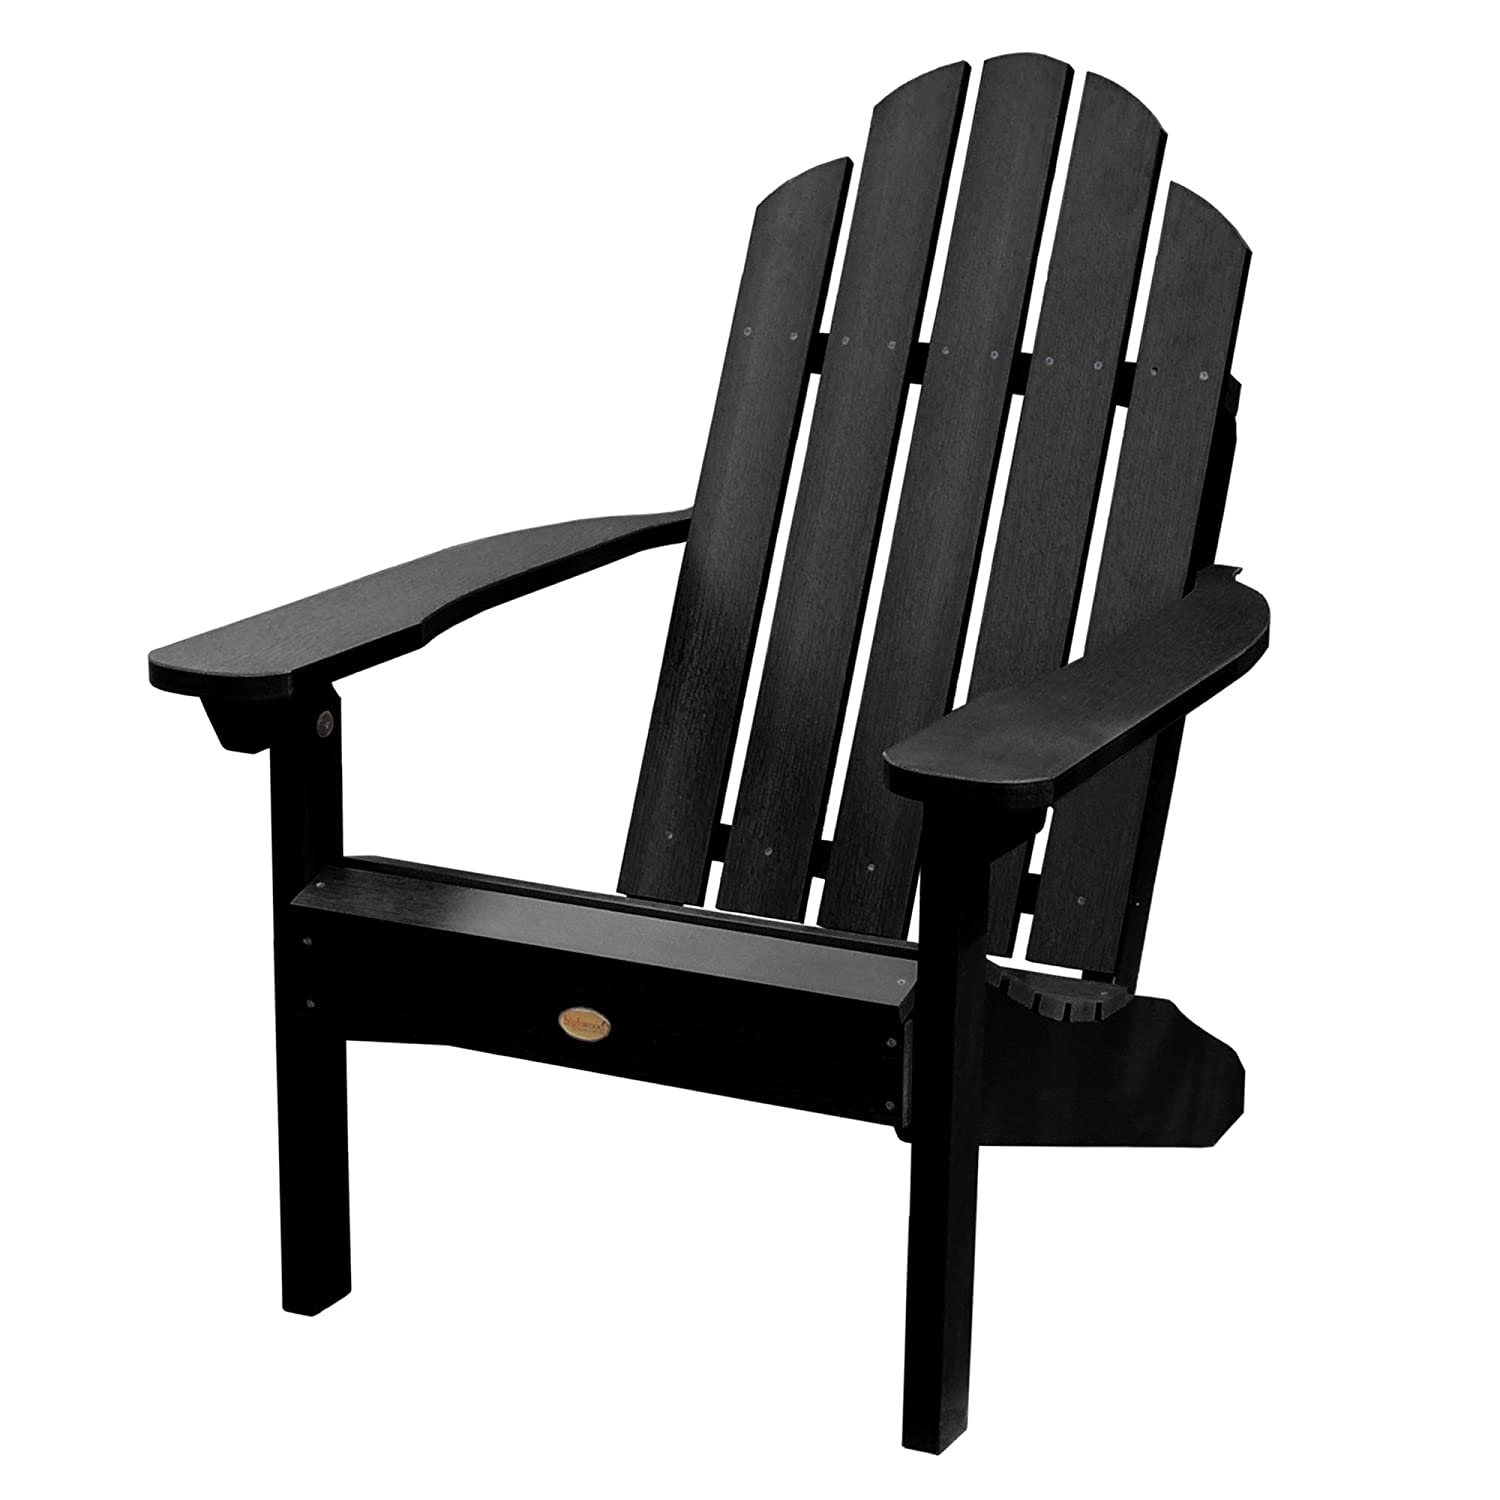 Top 10 Best Adirondack Chairs